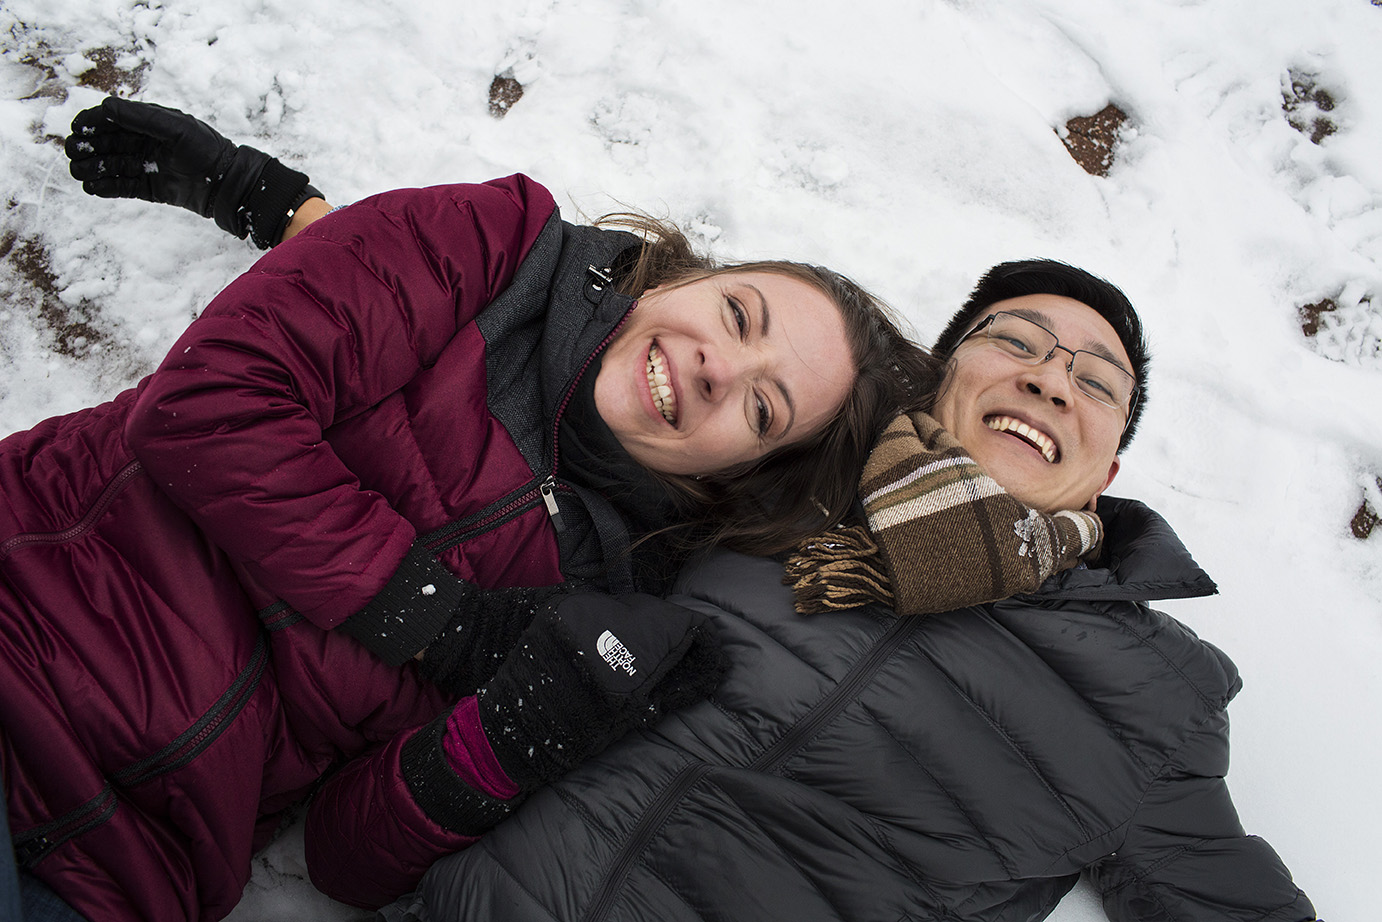 Winter Engagement Photoshoot on The Snow - Jillian and Ian